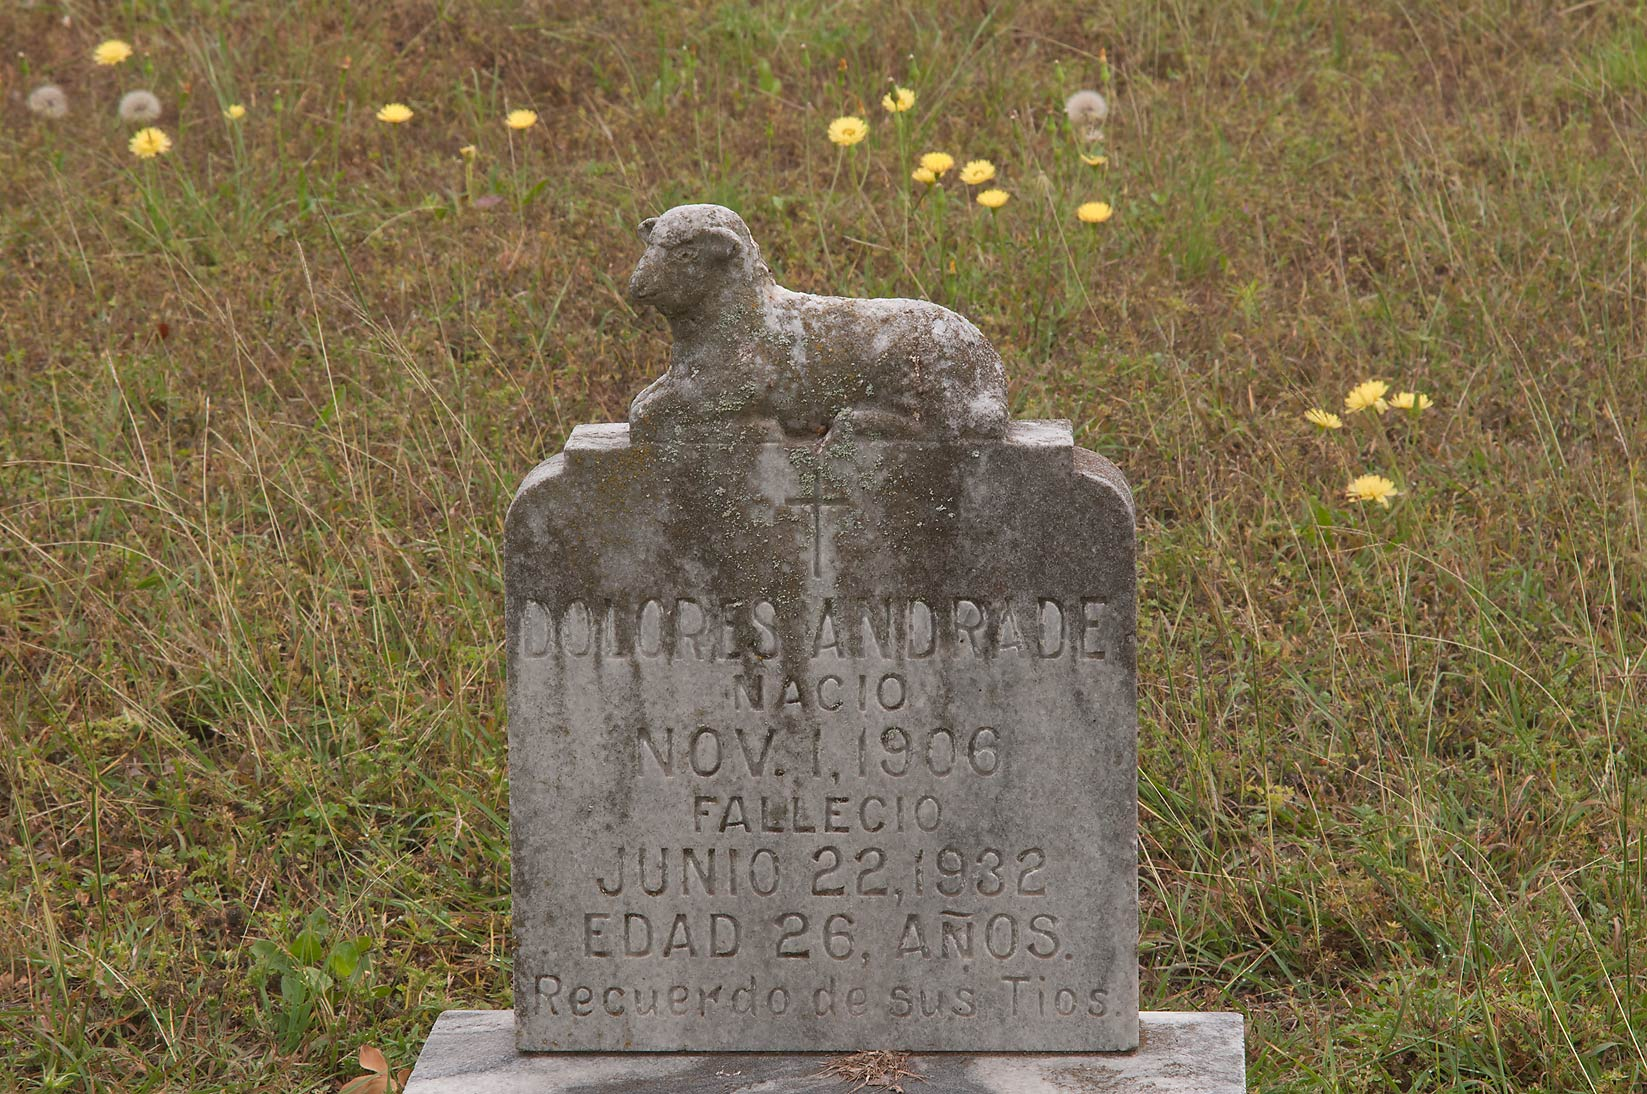 Tomb of Dolores Andrade Nacio (1906-1932) in a...Port Sullivan, west from Hearne. Texas